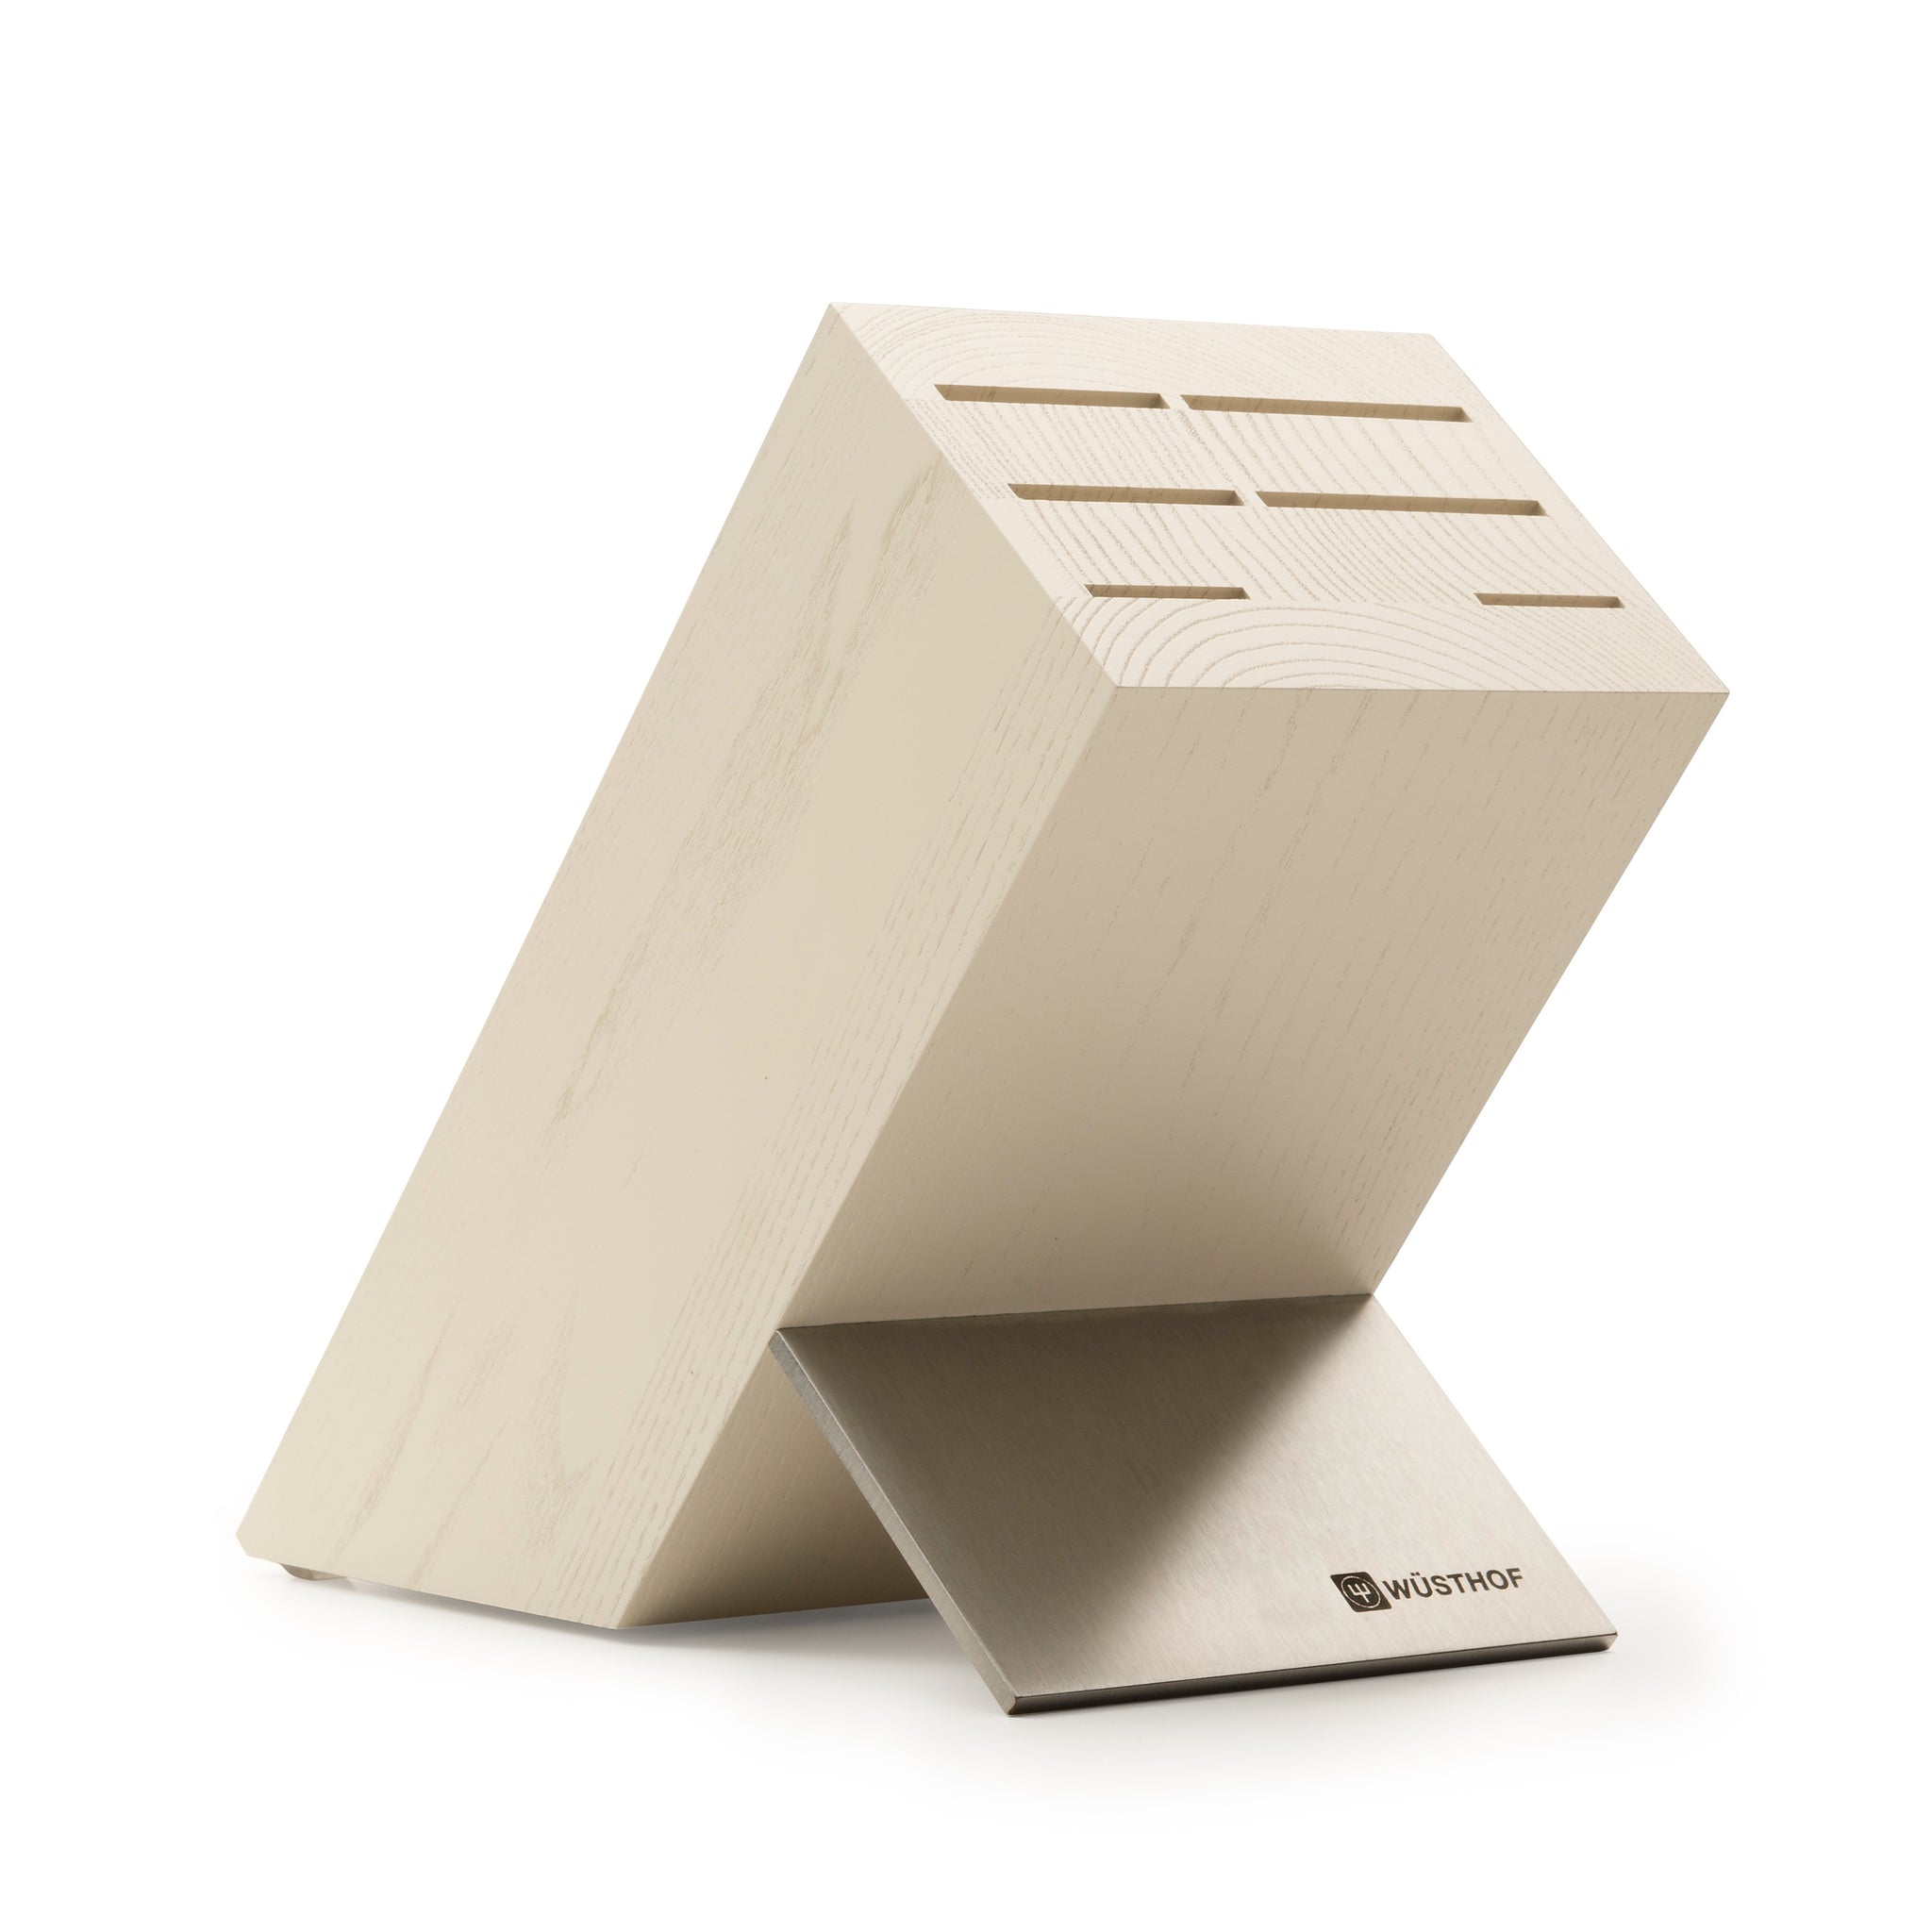 Crème Ash Wood Knife Block - 7266